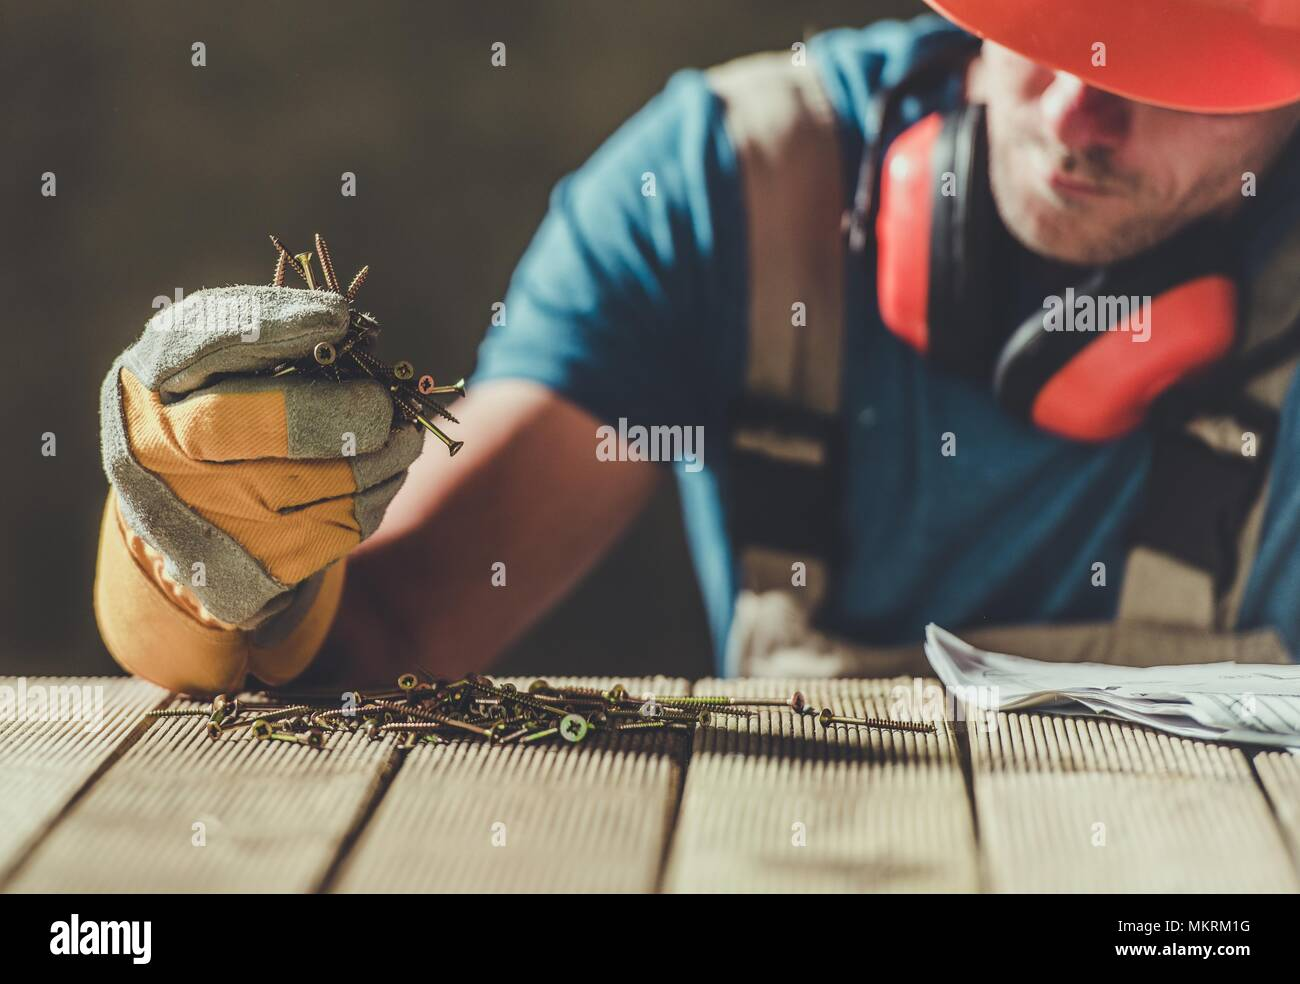 Caucasian Construction Worker with the Wood Screws. Taking Moment to Rethink the Job and the Life. - Stock Image